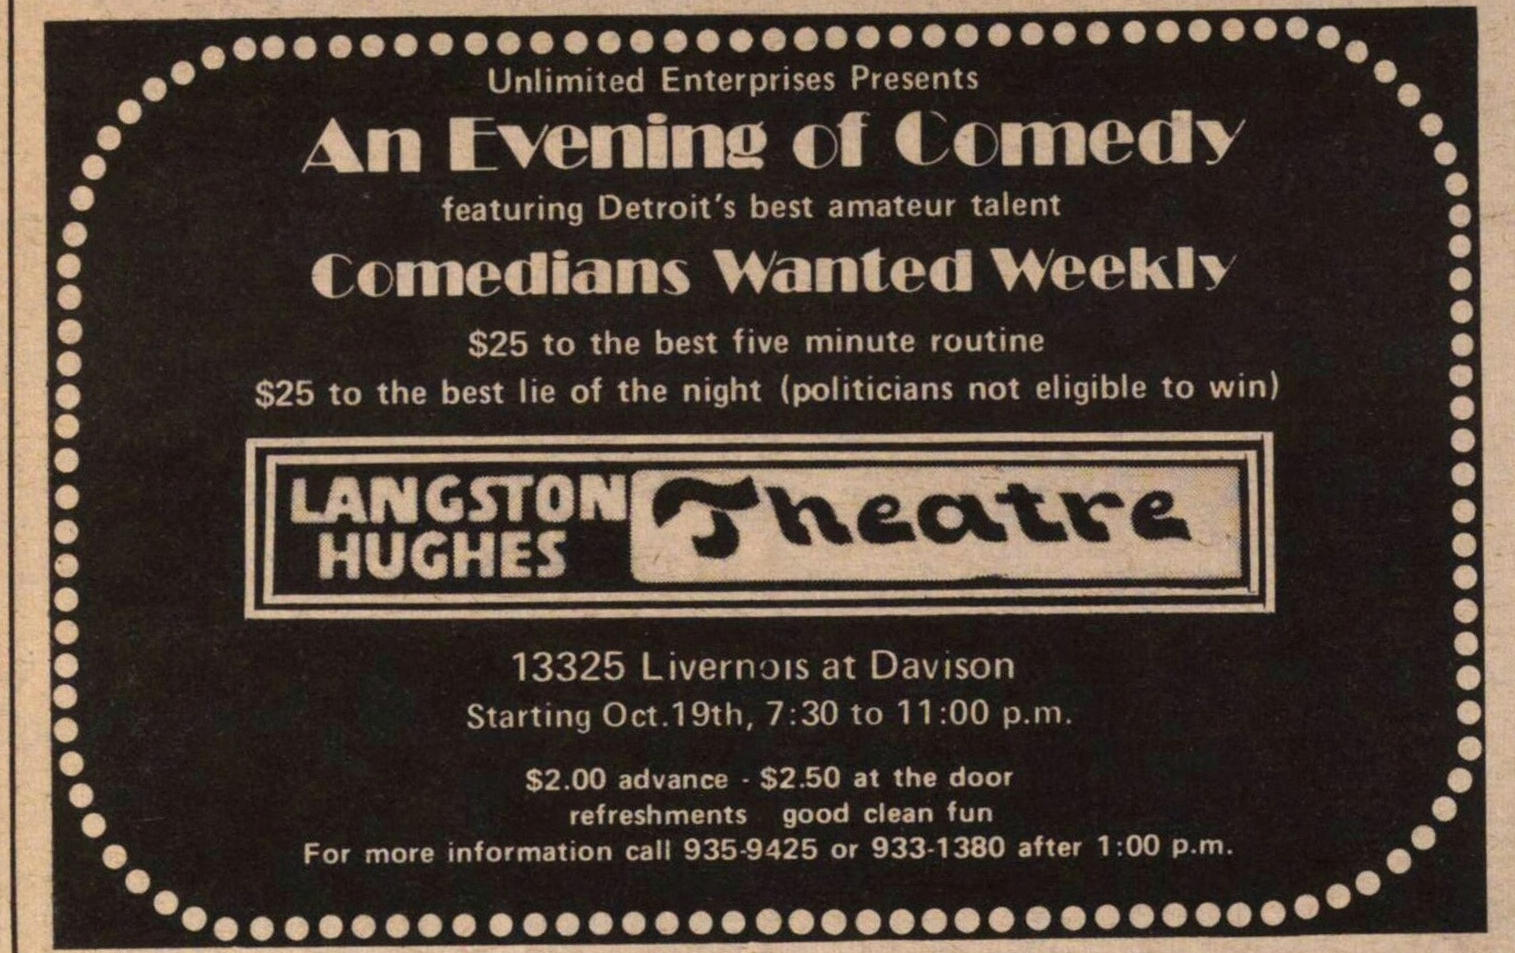 Langston Hughes Theatre image